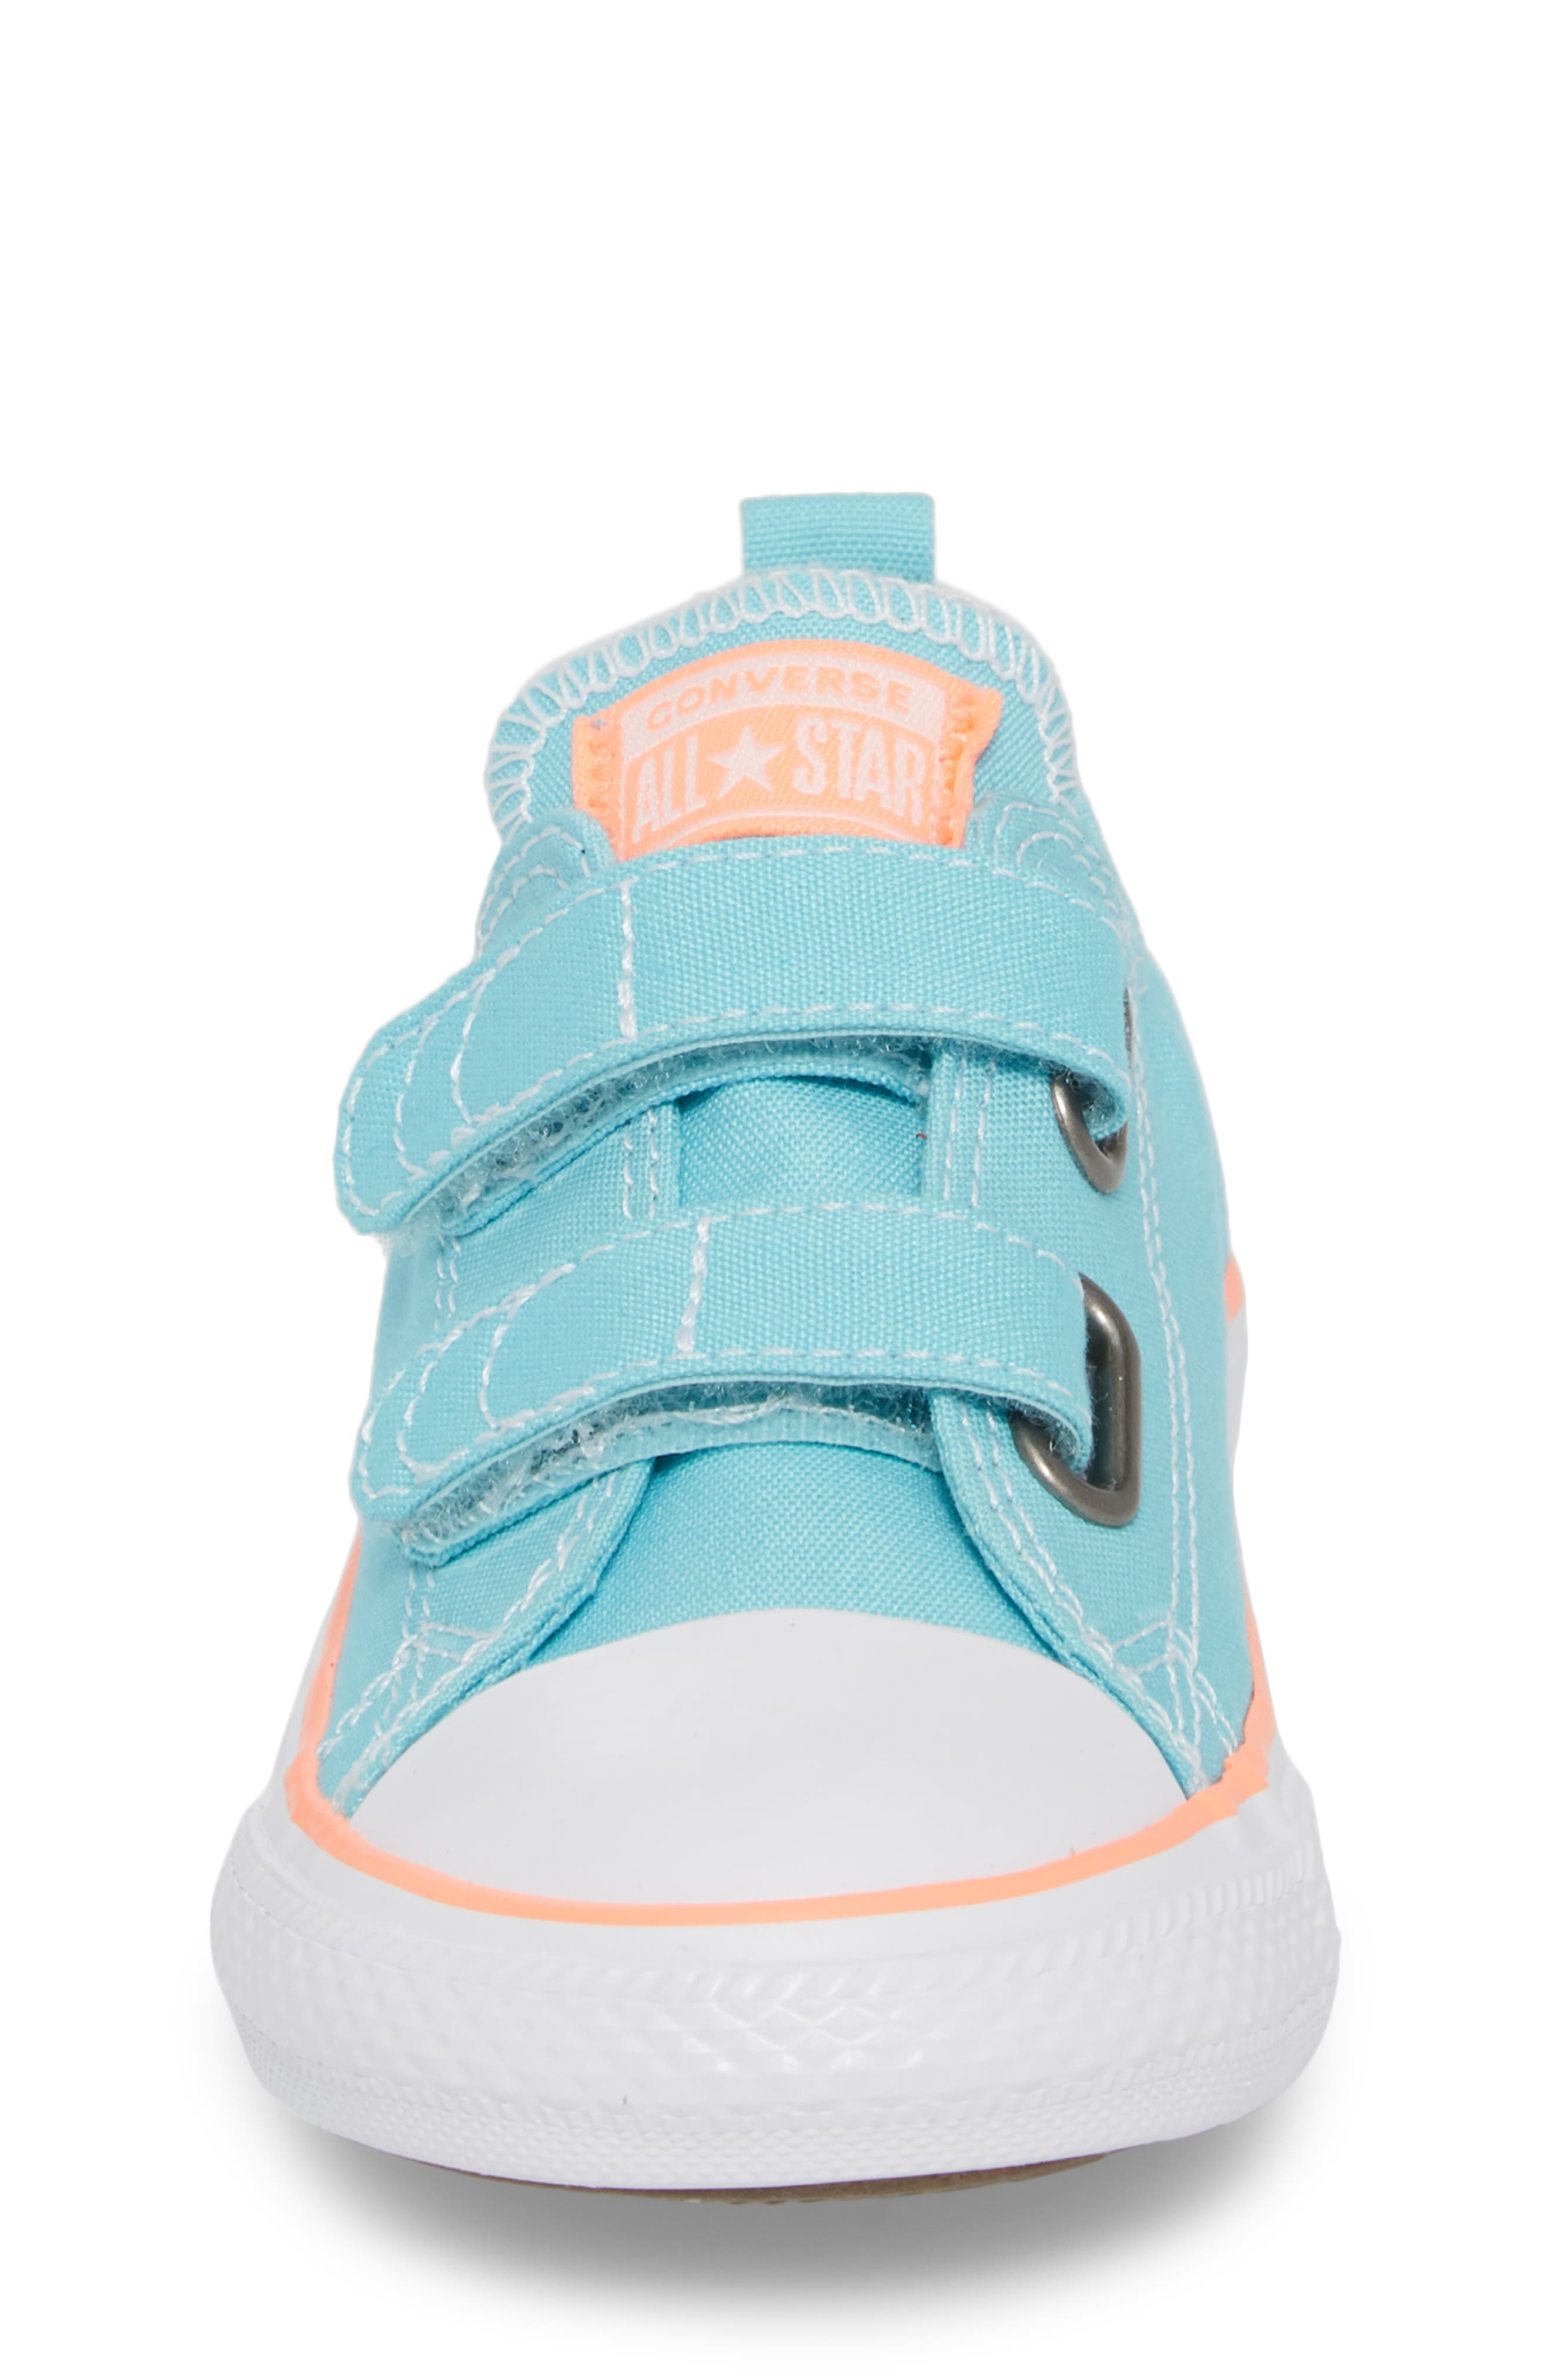 All Star<sup>®</sup> 2V Low Top Sneaker,                             Alternate thumbnail 4, color,                             486